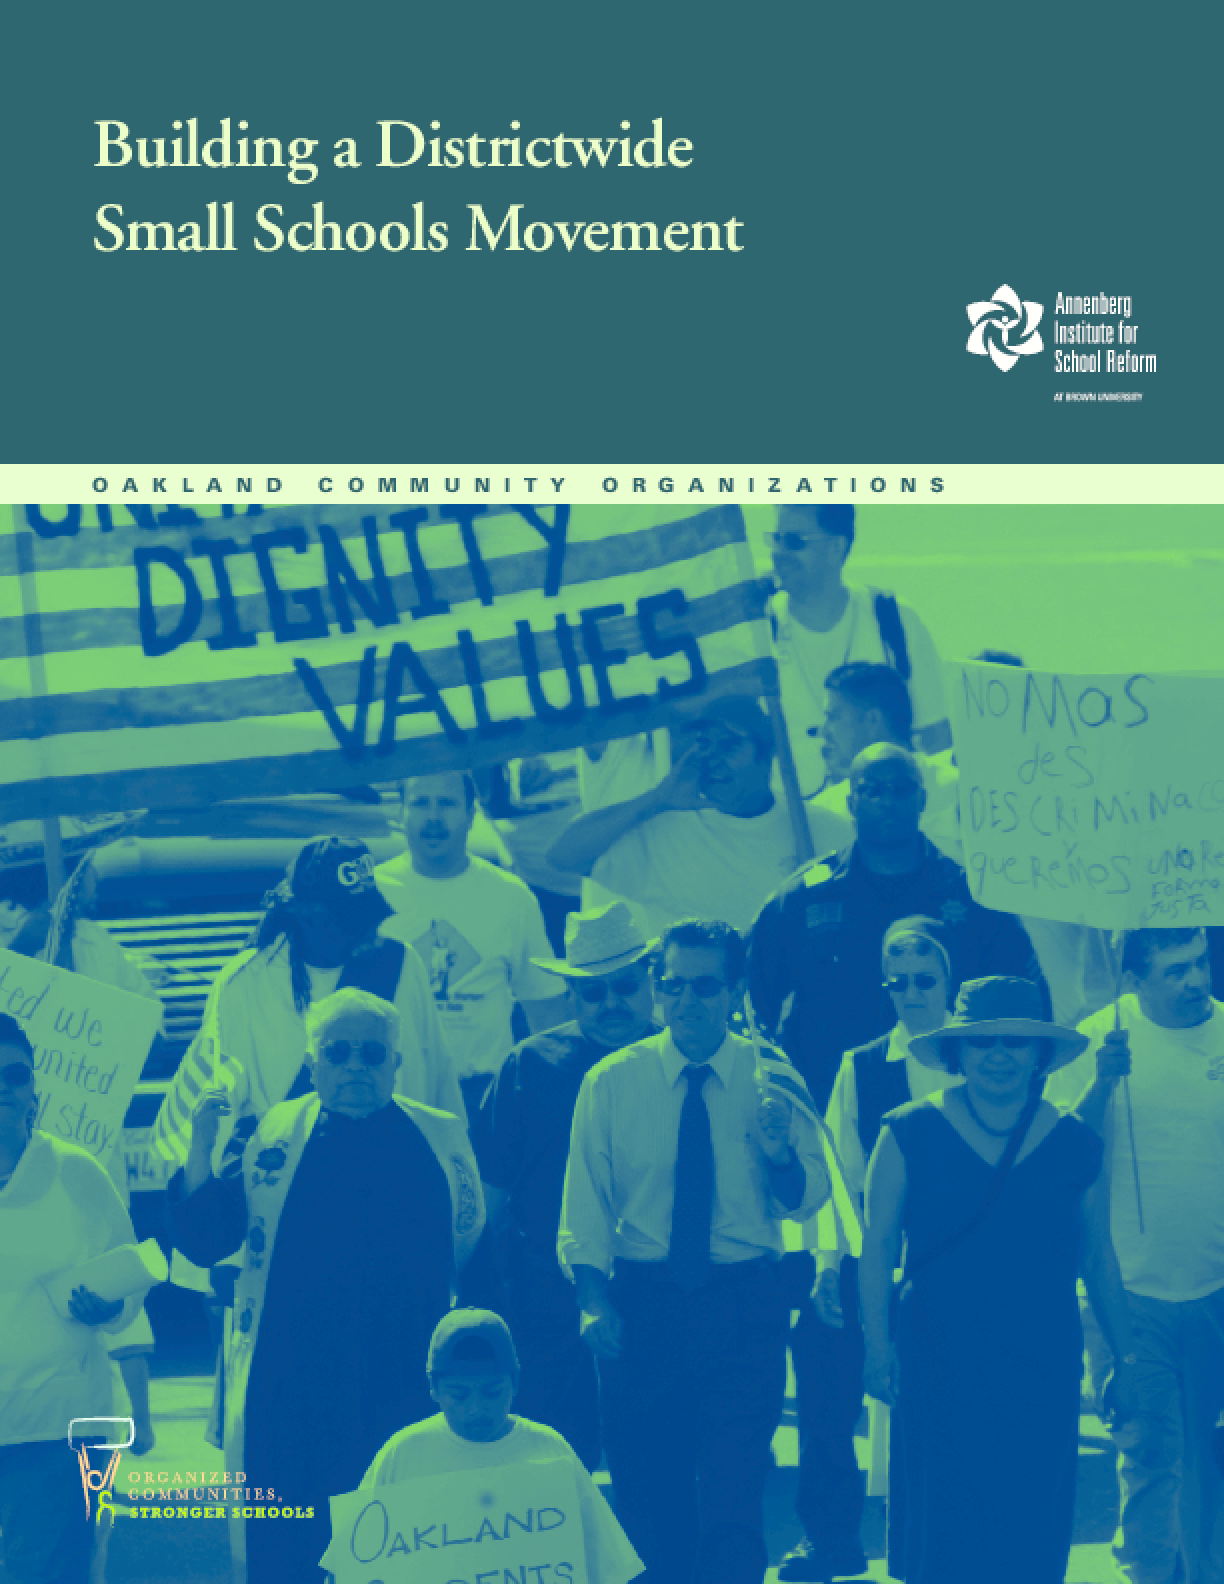 Building a Districtwide Small Schools Movement